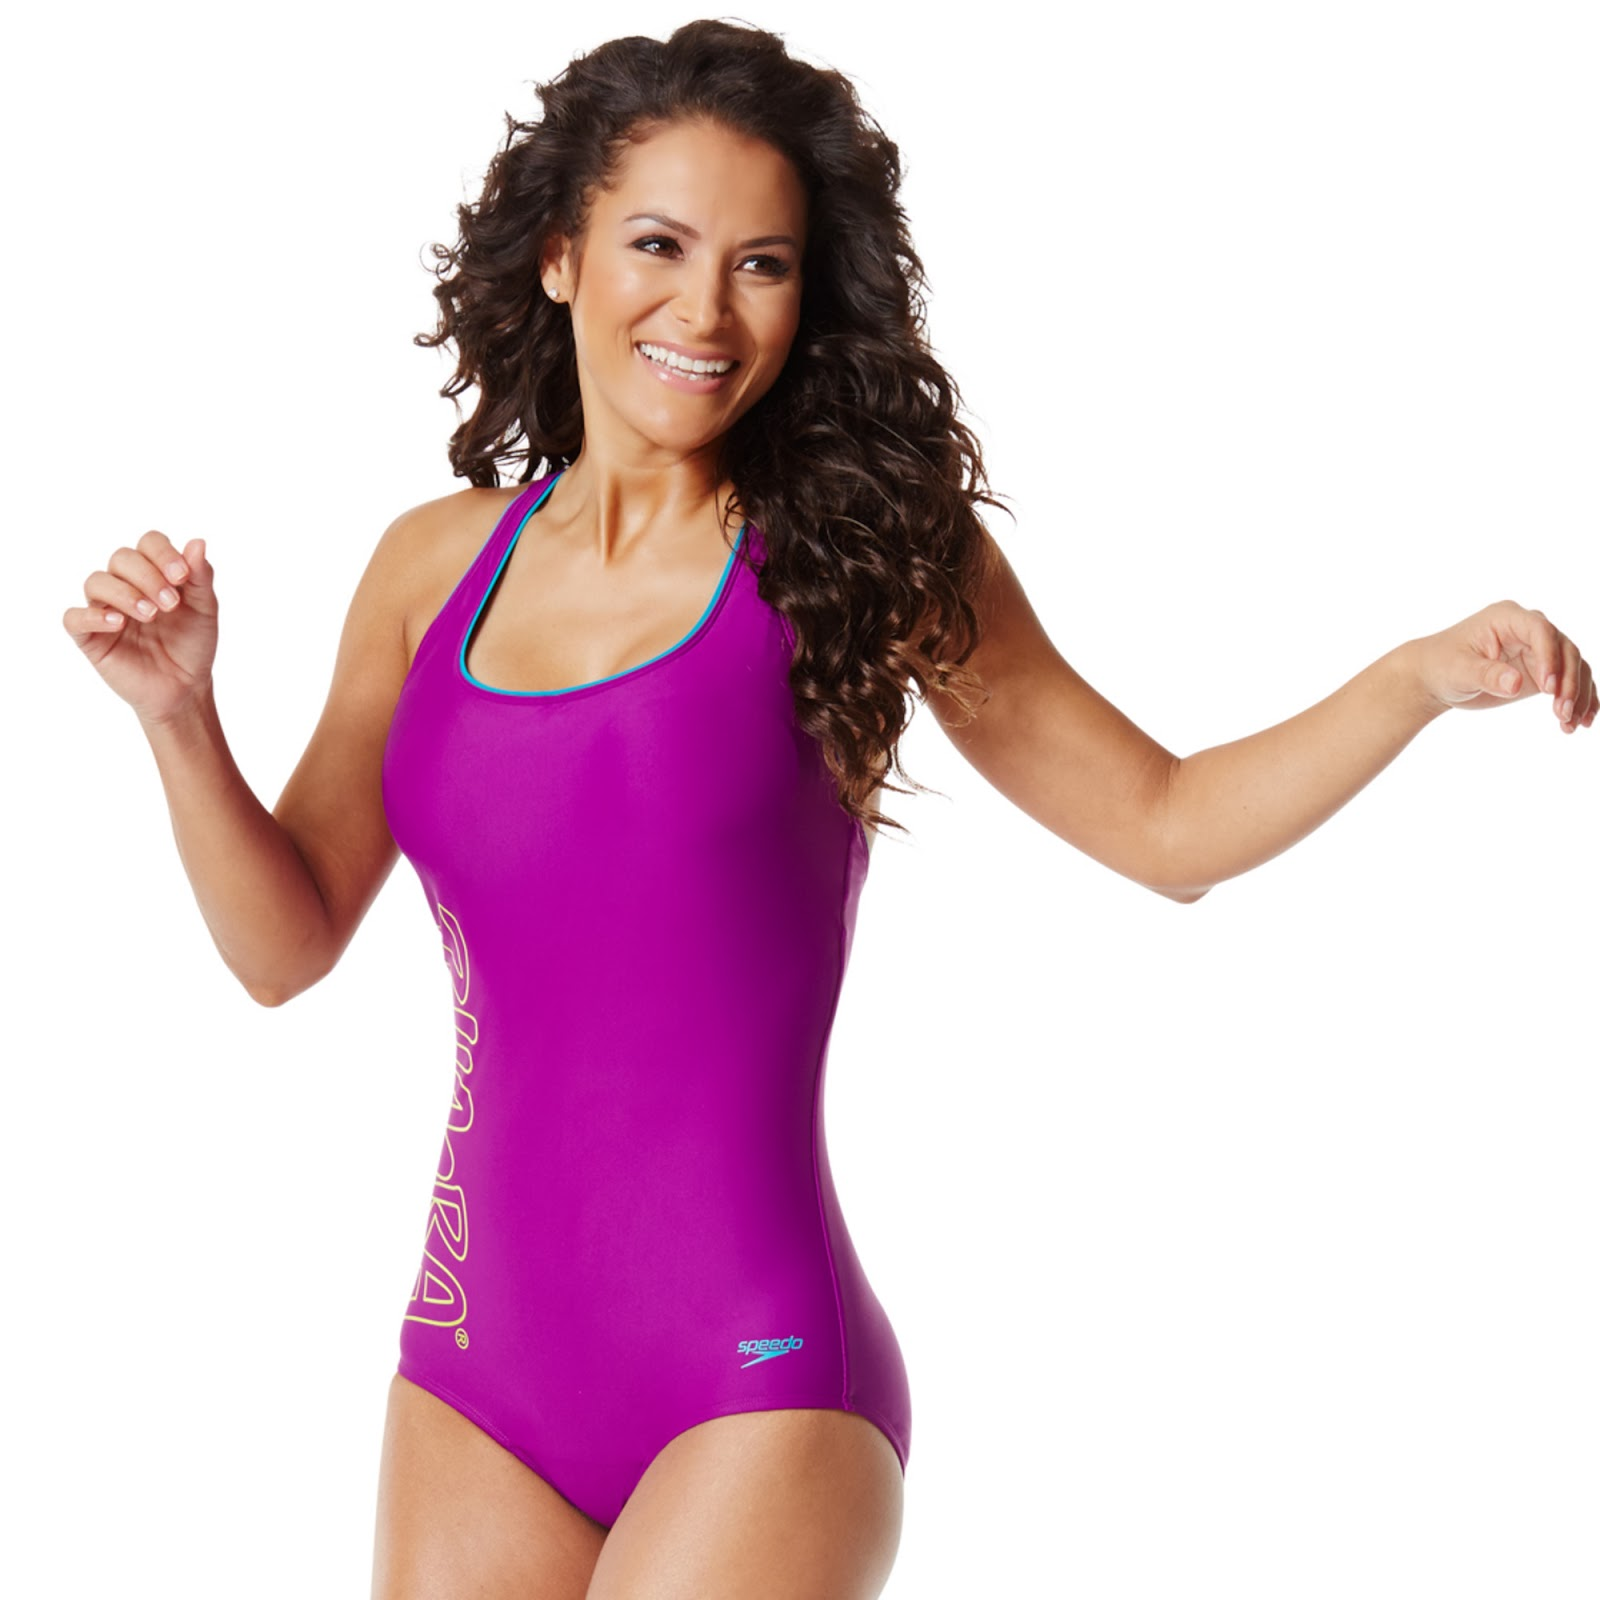 http://www.zumba.com/en-US/store-zin/US/product/rock-with-me-ultraback-one-piece?color=Vivid%20Violet